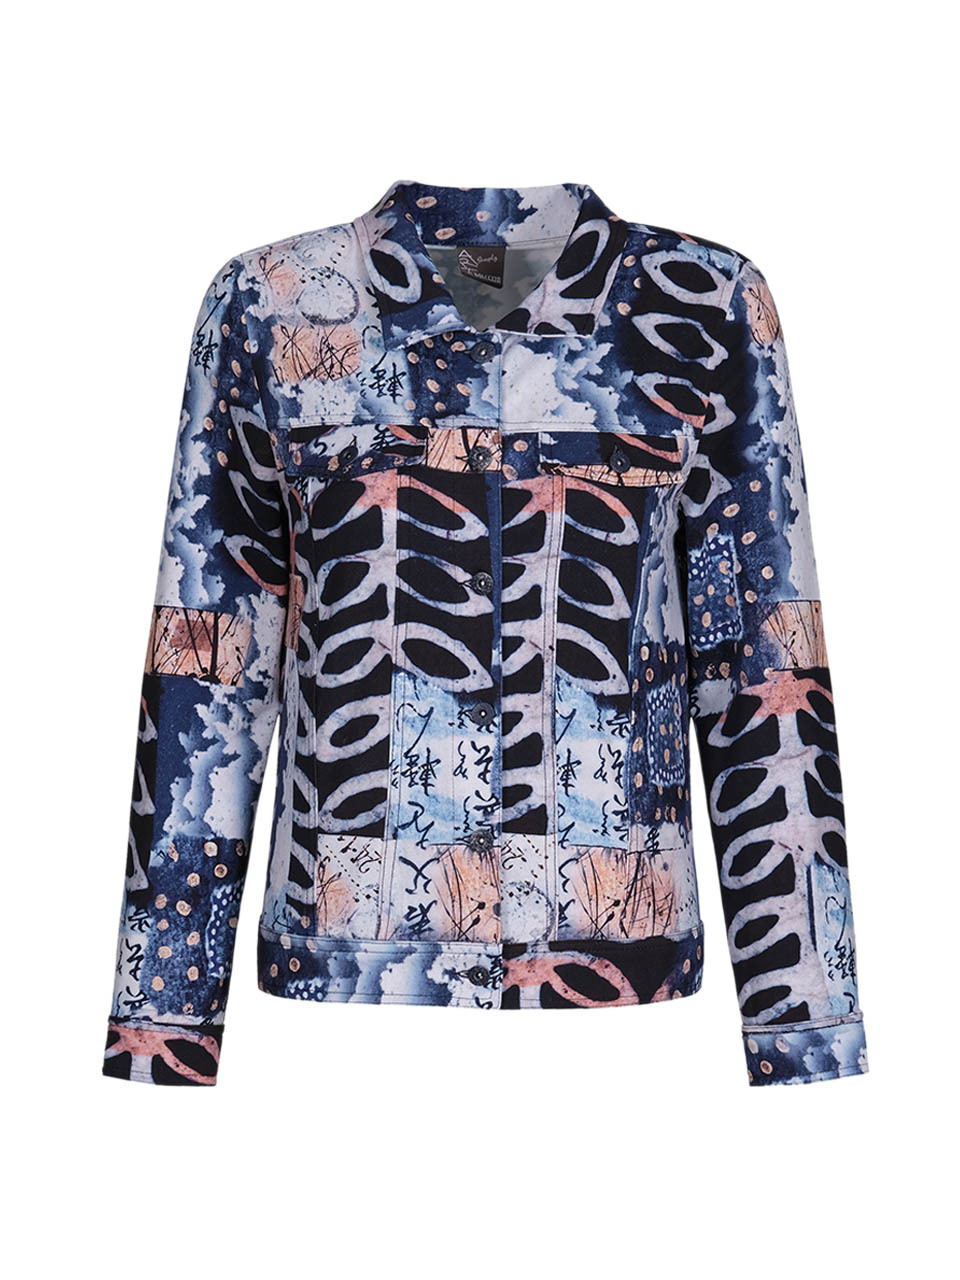 Simply Art Dolcezza: Papers In Color Abstract Art Soft Denim Jacket Dolcezza_SimplyArt_71736